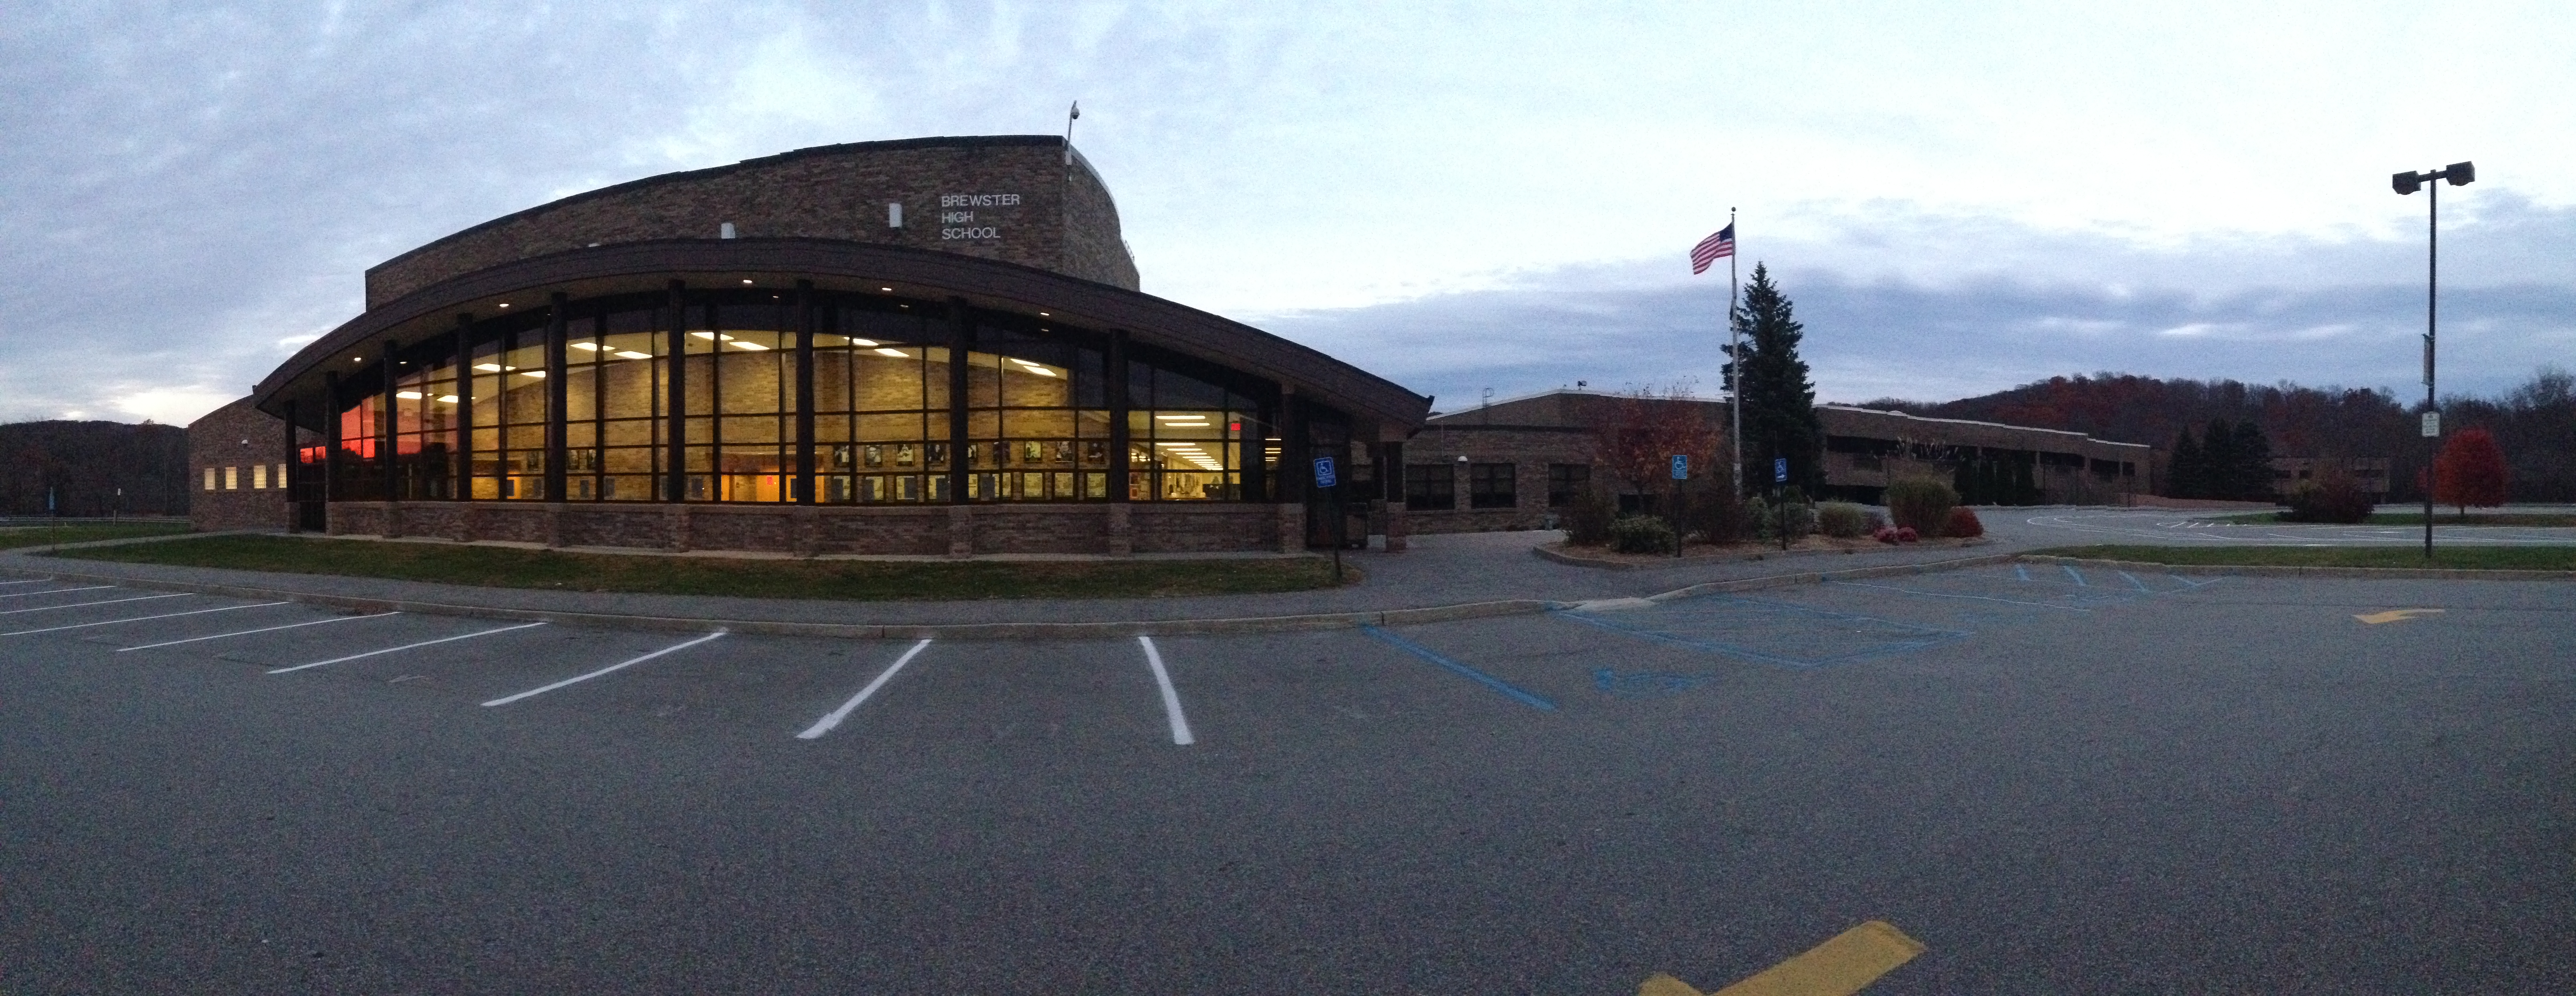 2013 little fat notebook panoramic of brewster high school